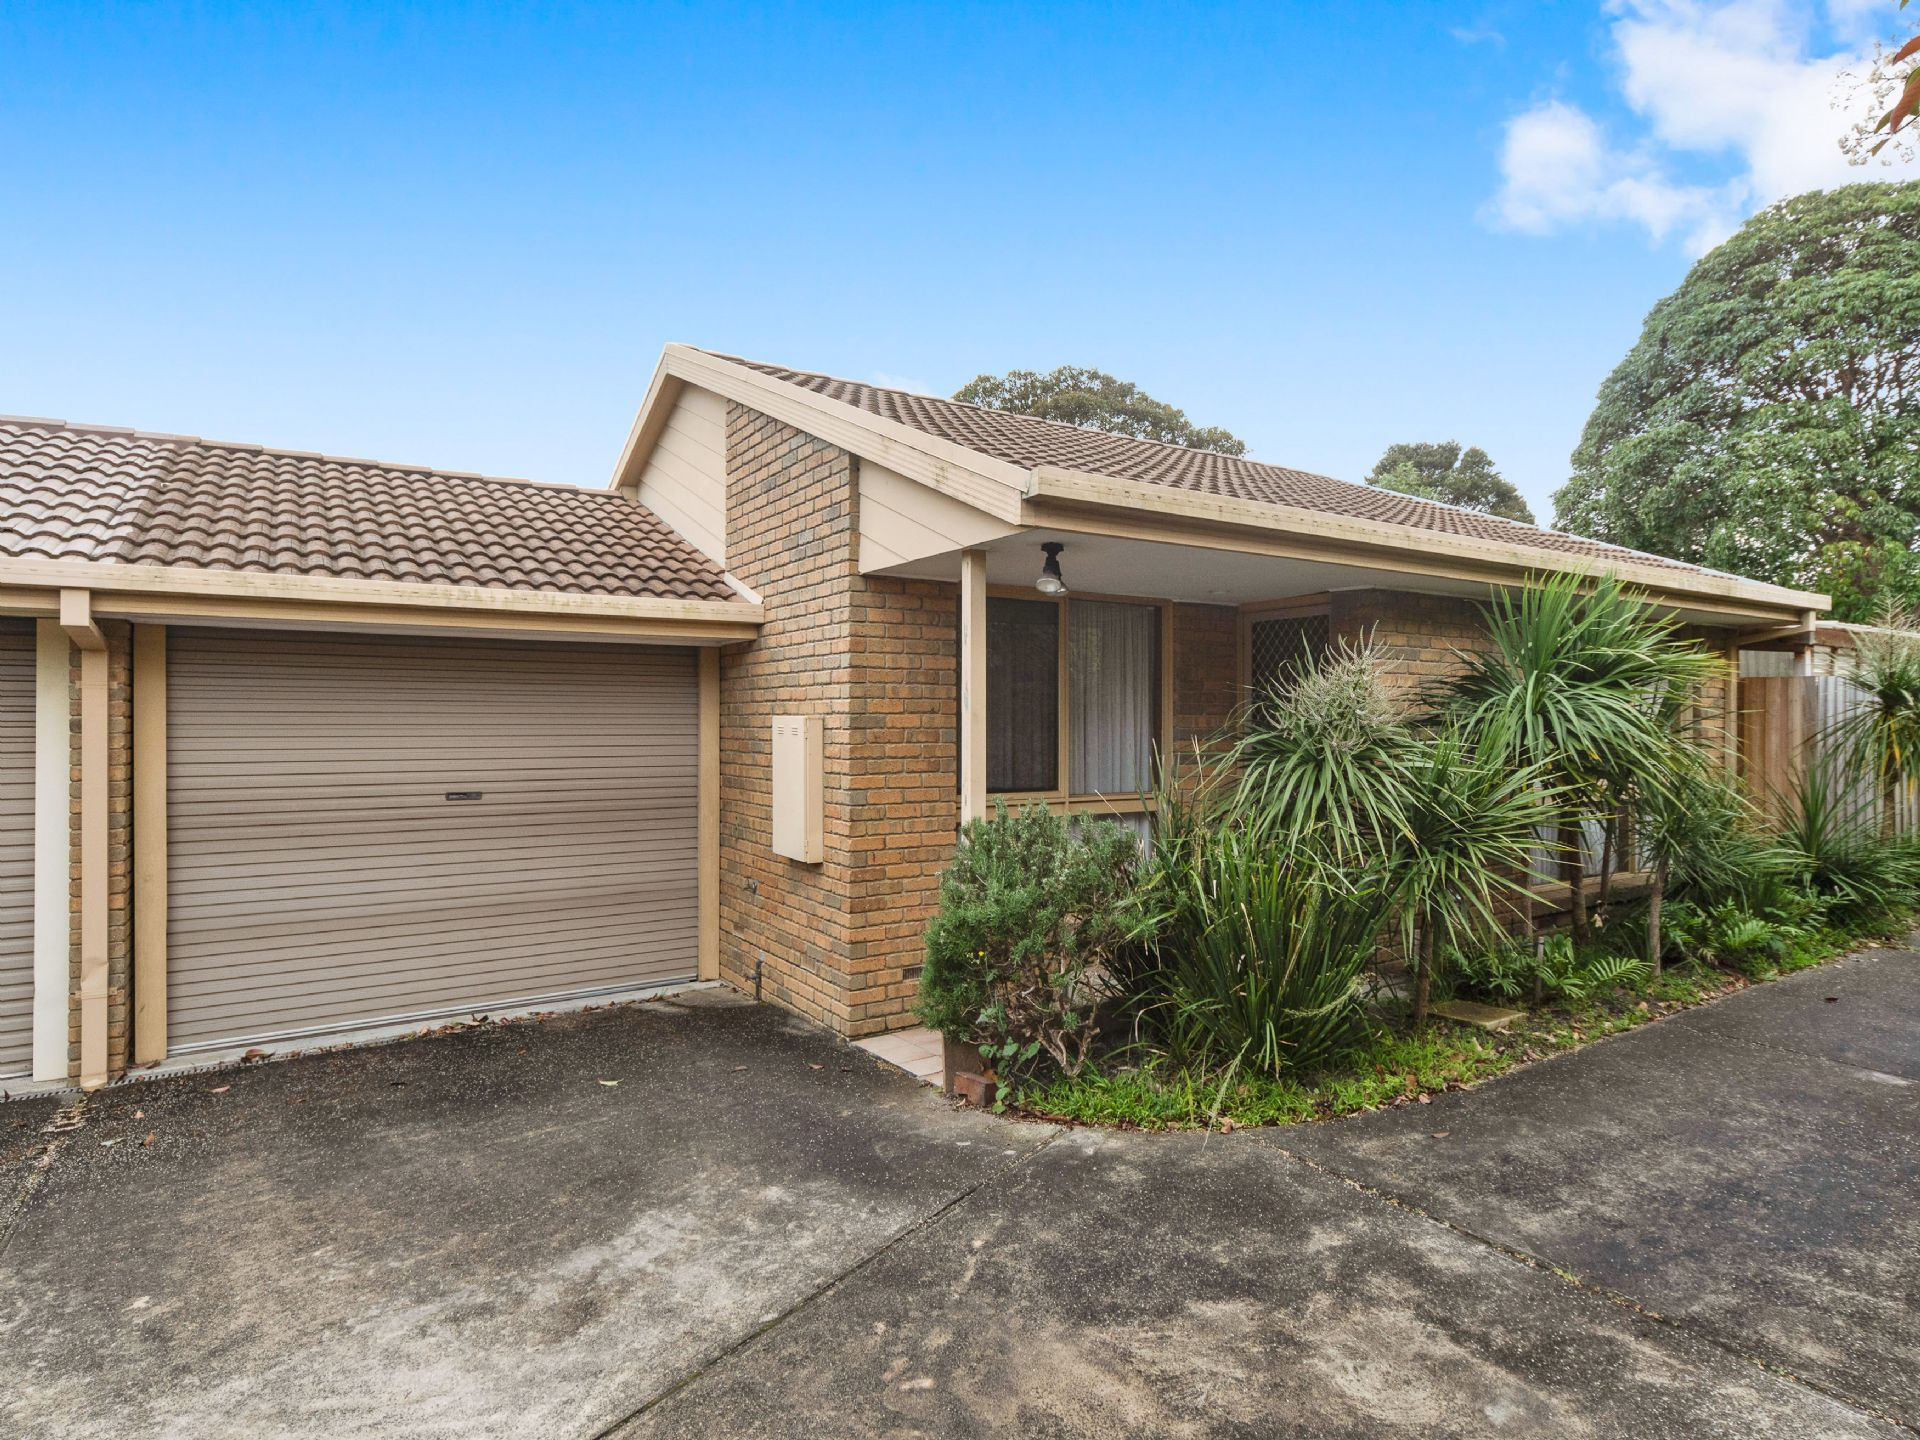 37 Campbell Street, FRANKSTON, VIC, 3199 - Image